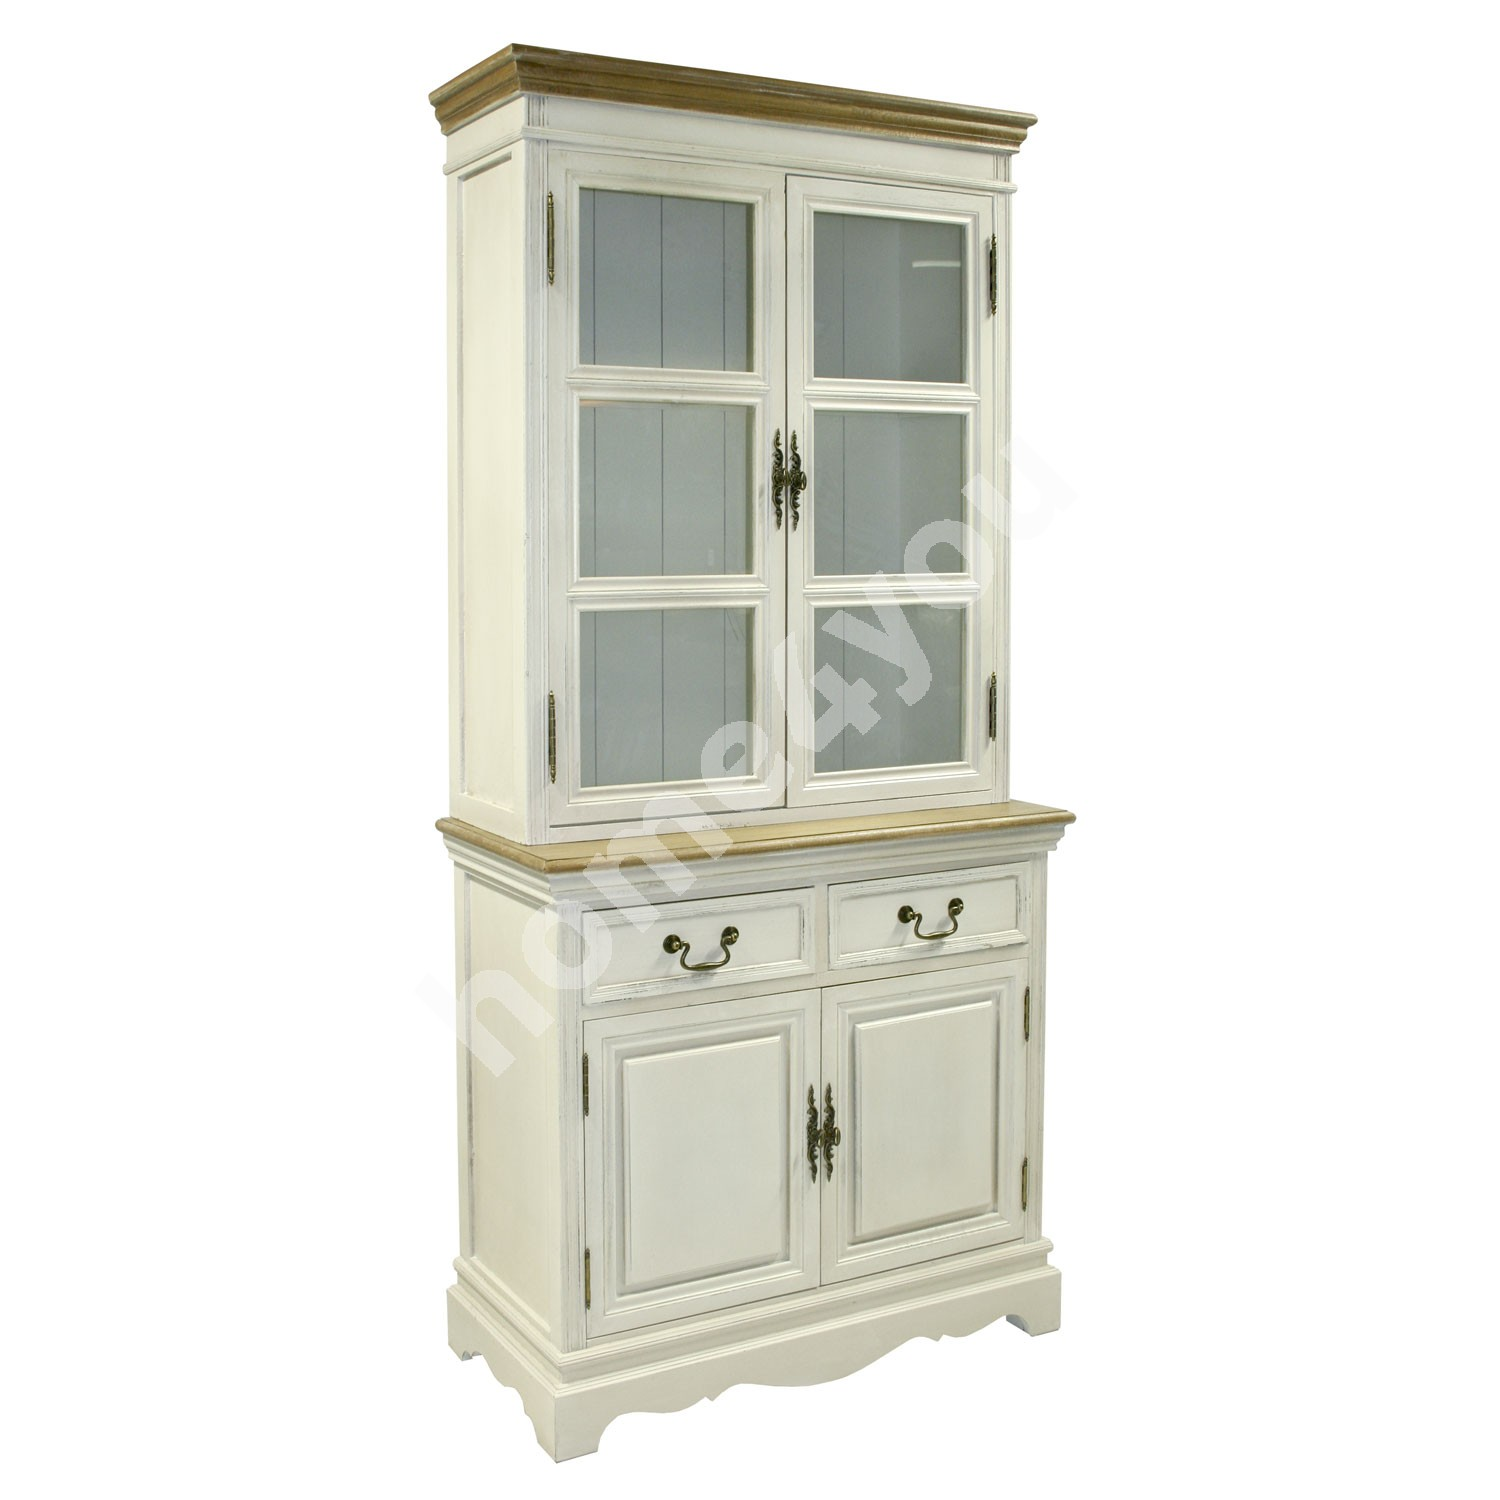 Cabinet SAMIRA with 4-doors and 2-drawers, 85,5x39,5/31xH189,5cm, color: antique white / brown